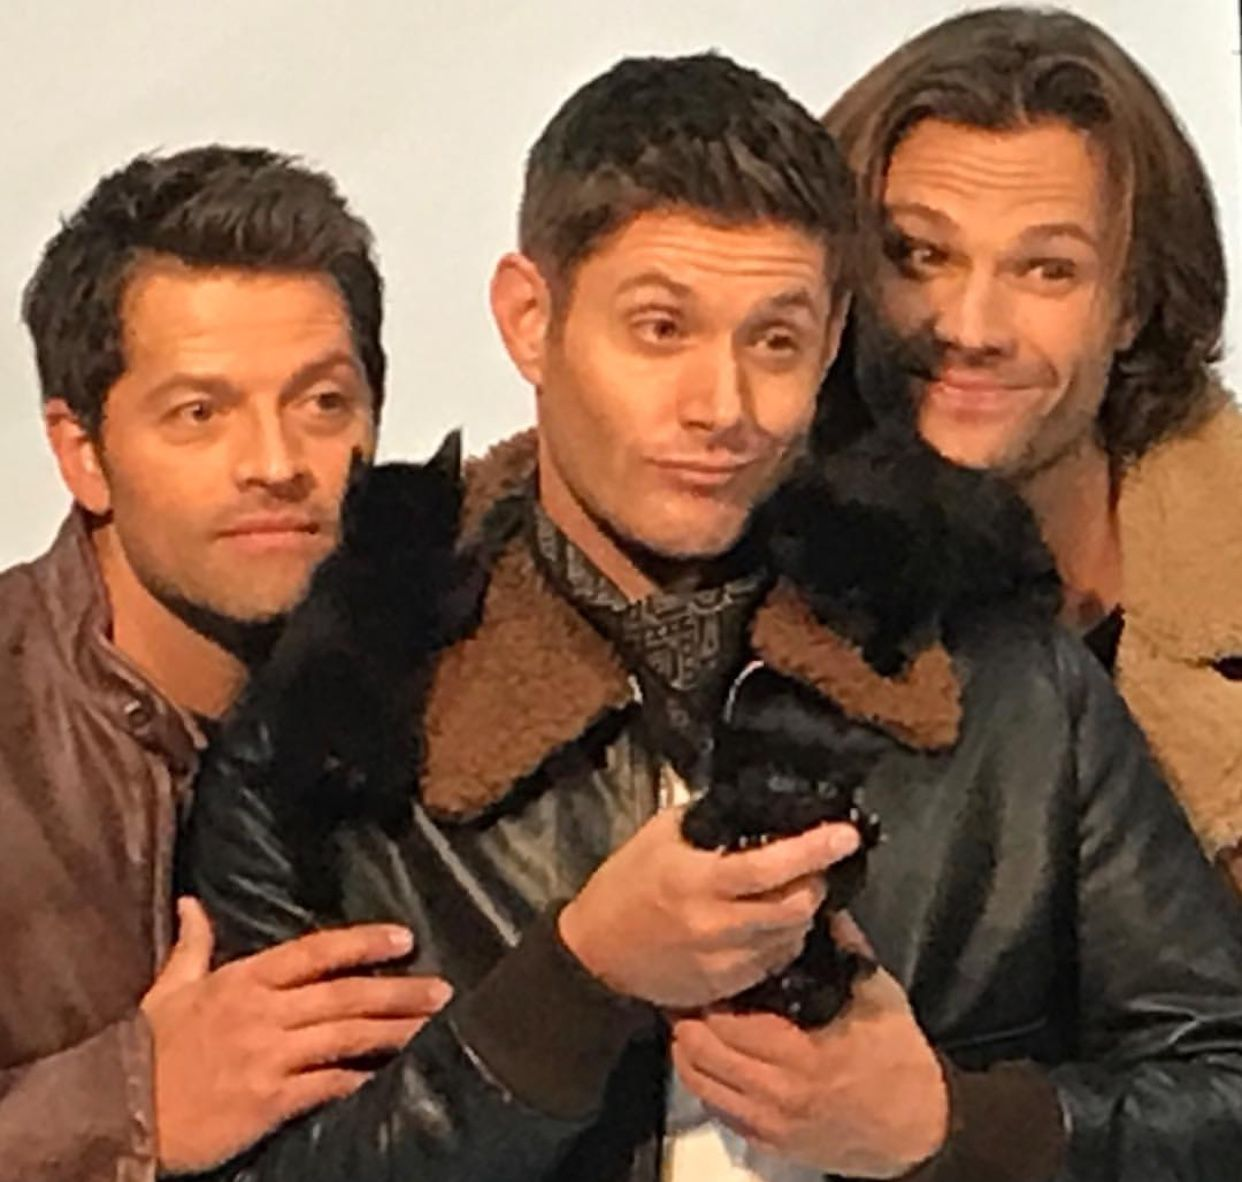 XD aaaww!!!! Misha, Jensen and Jared with kittens ...